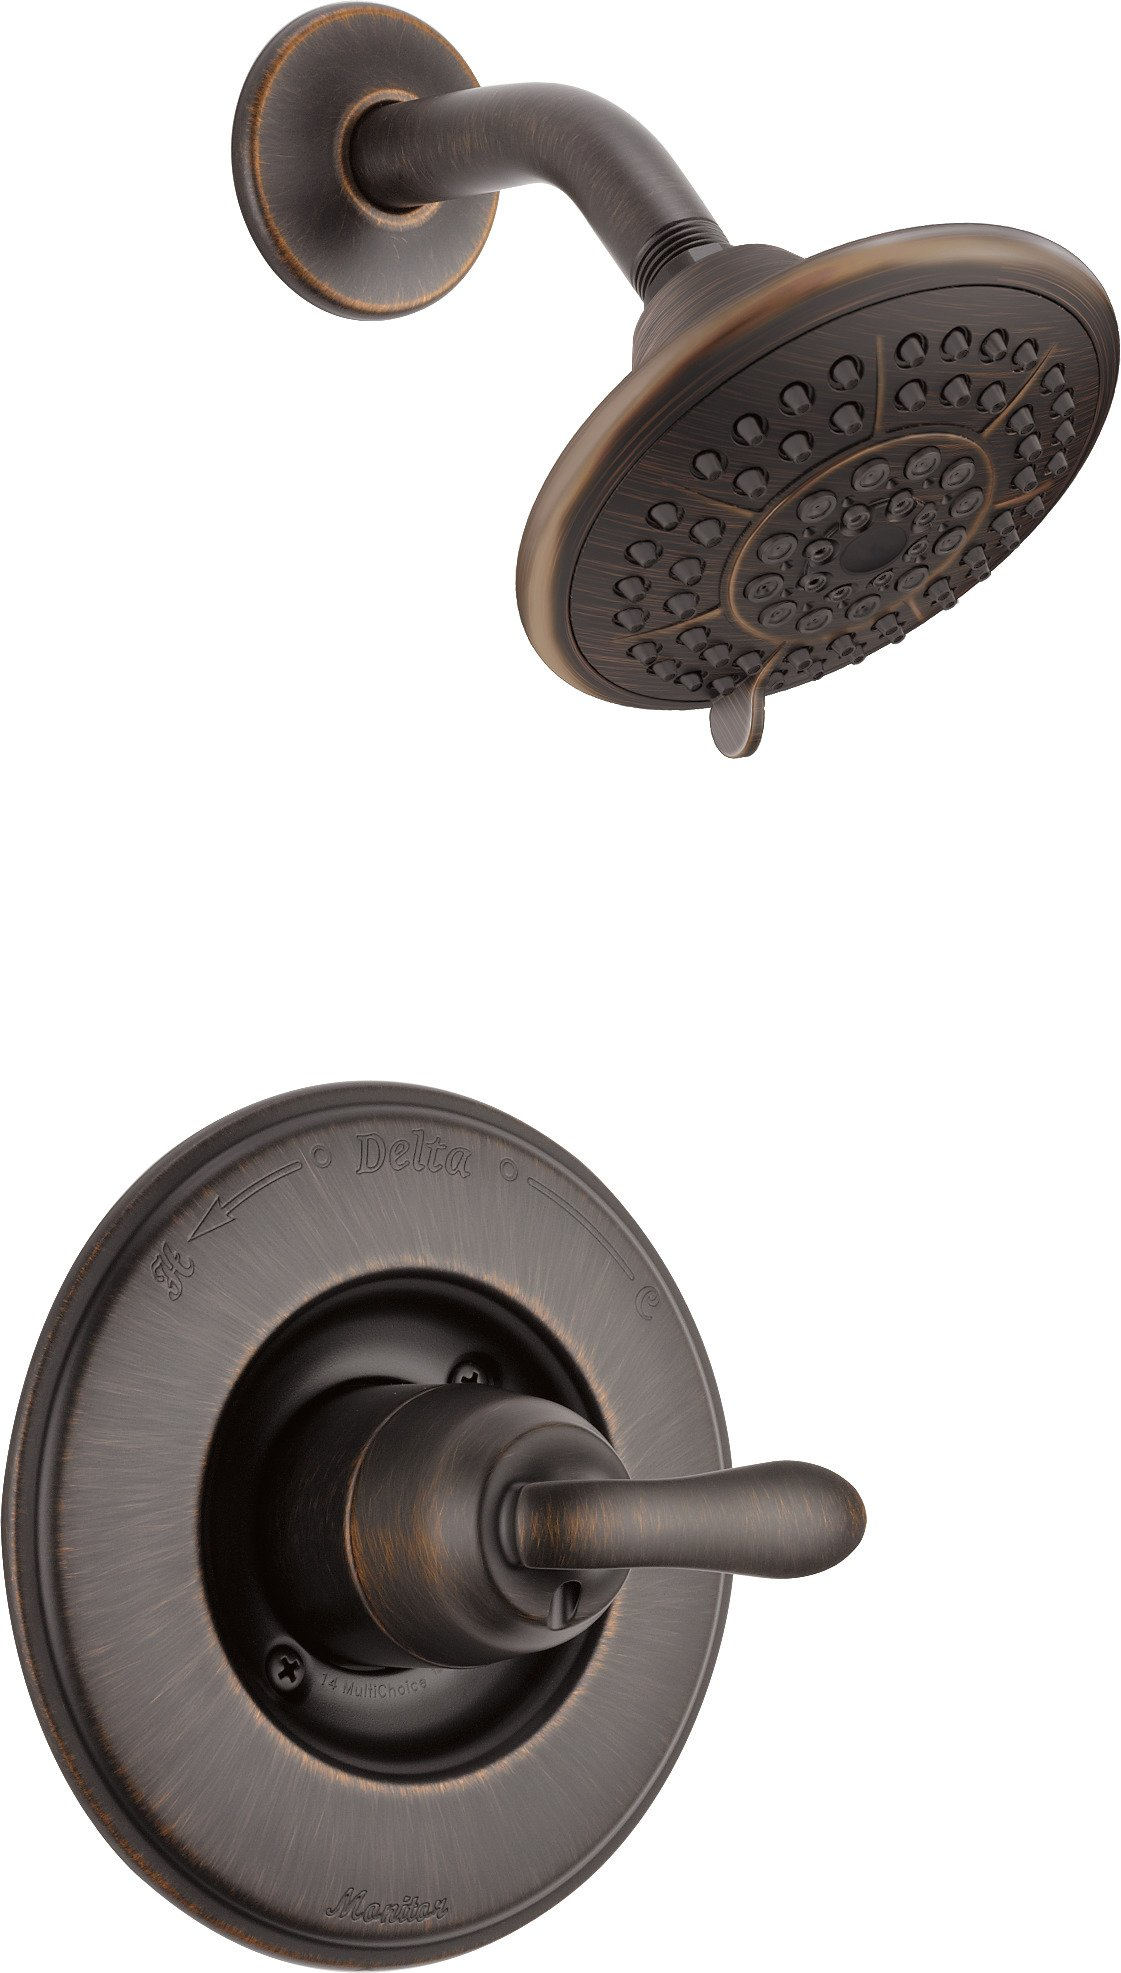 Delta Linden 14 Series Single-Function Shower Trim Kit with 5-Spray Touch Clean Shower Head, Venetian Bronze T14294-RB (Valve Not Included) by DELTA FAUCET